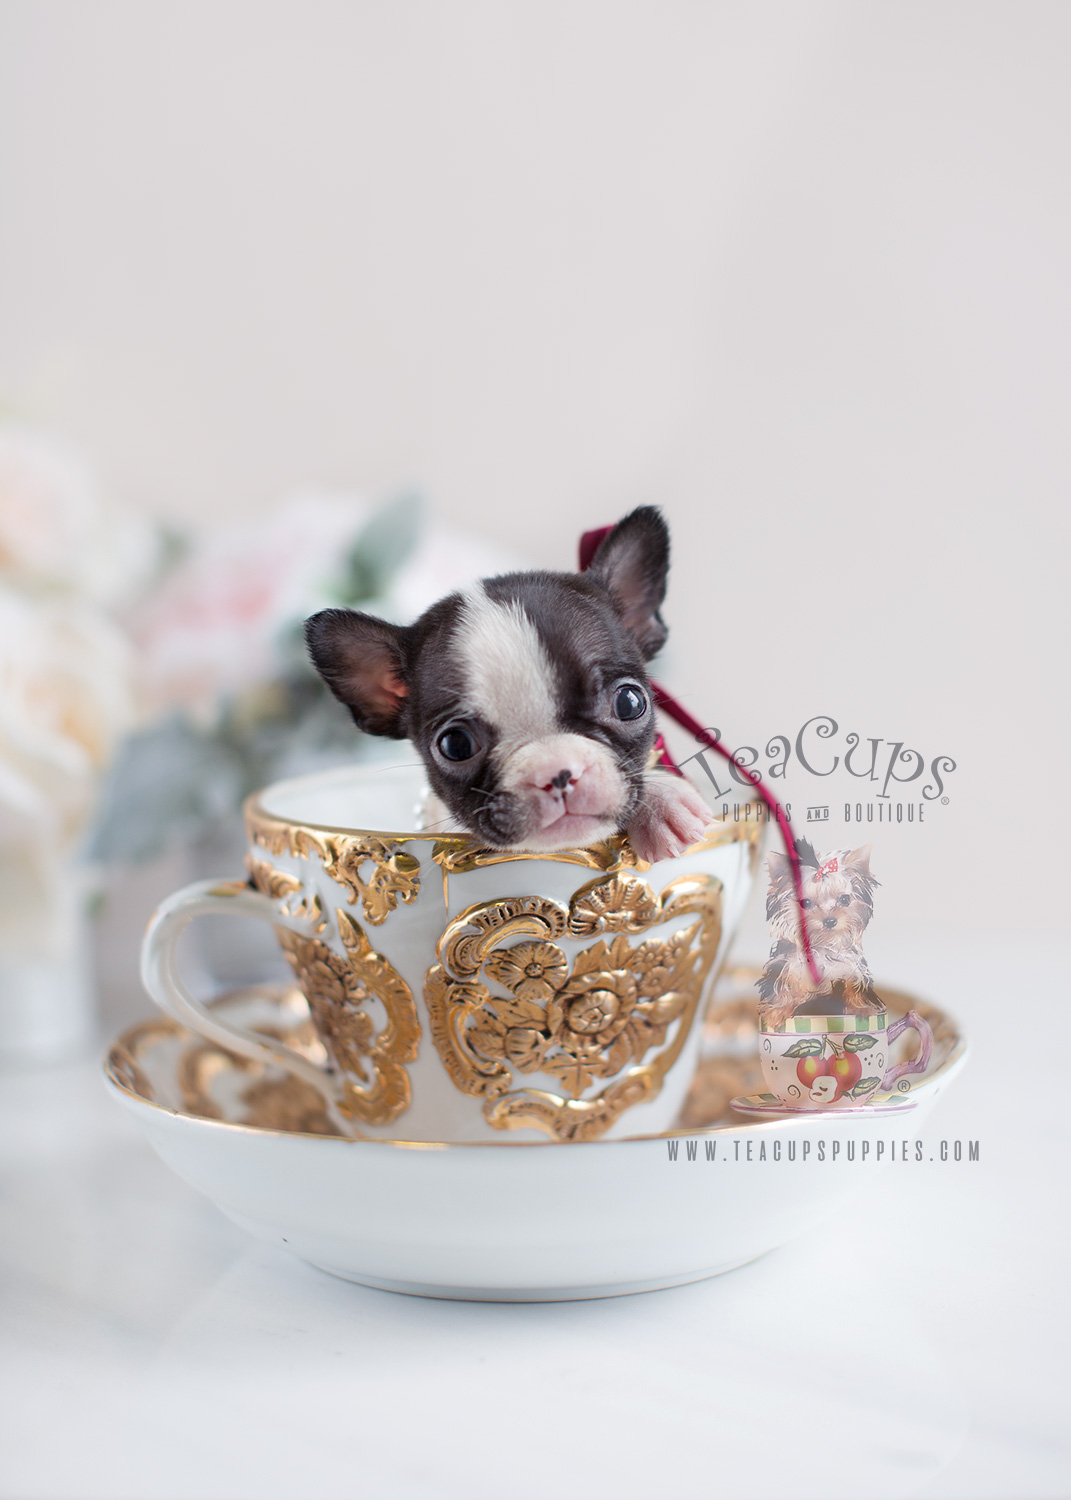 Tiny French Bulldog Puppy For Sale by Teacup Puppies